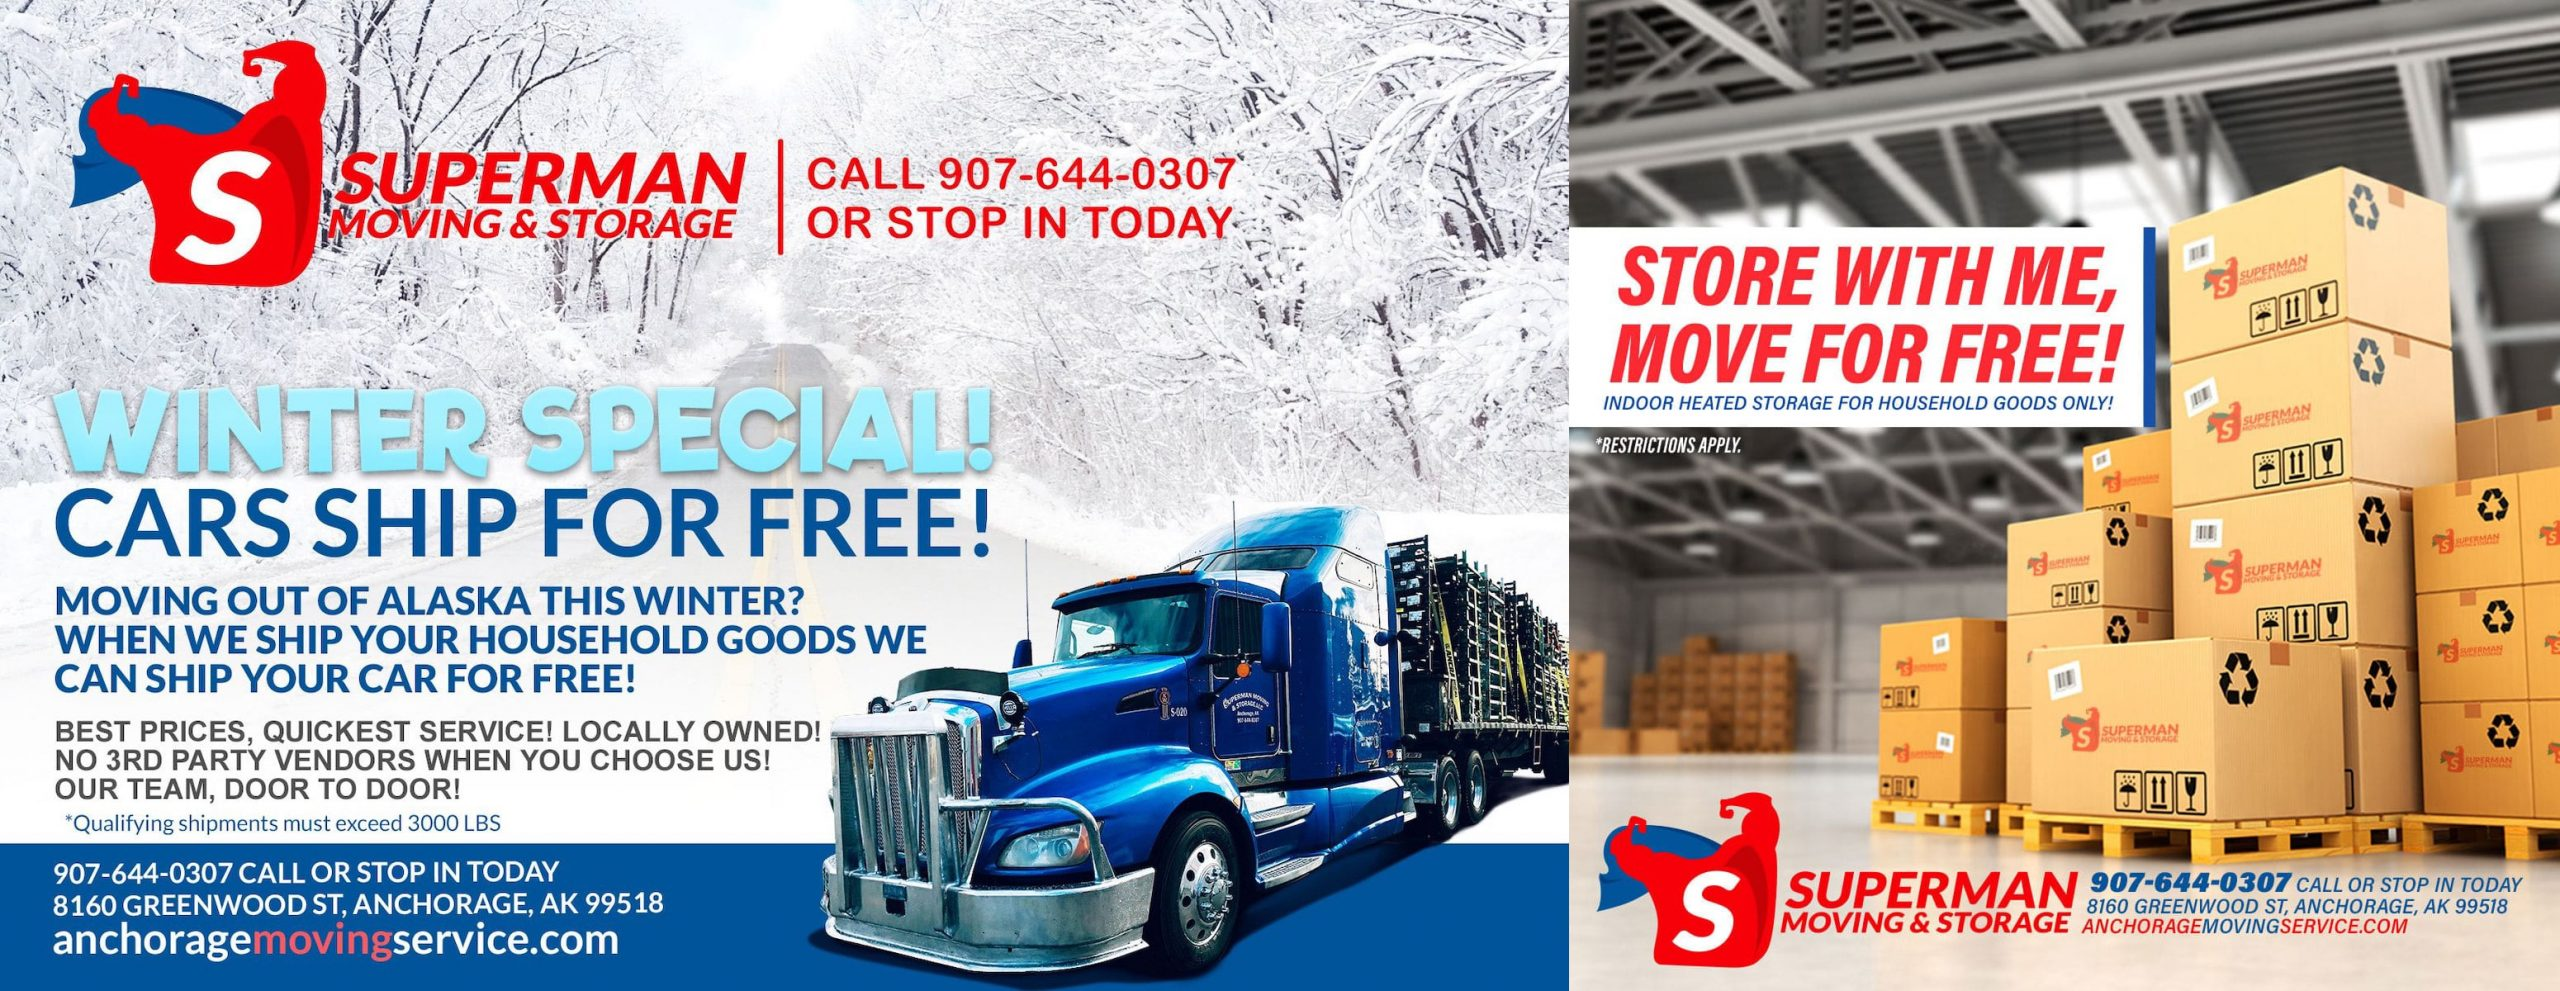 Superman Moving and Storage Winter Moving and Storage Promotions Anchorage Alaska